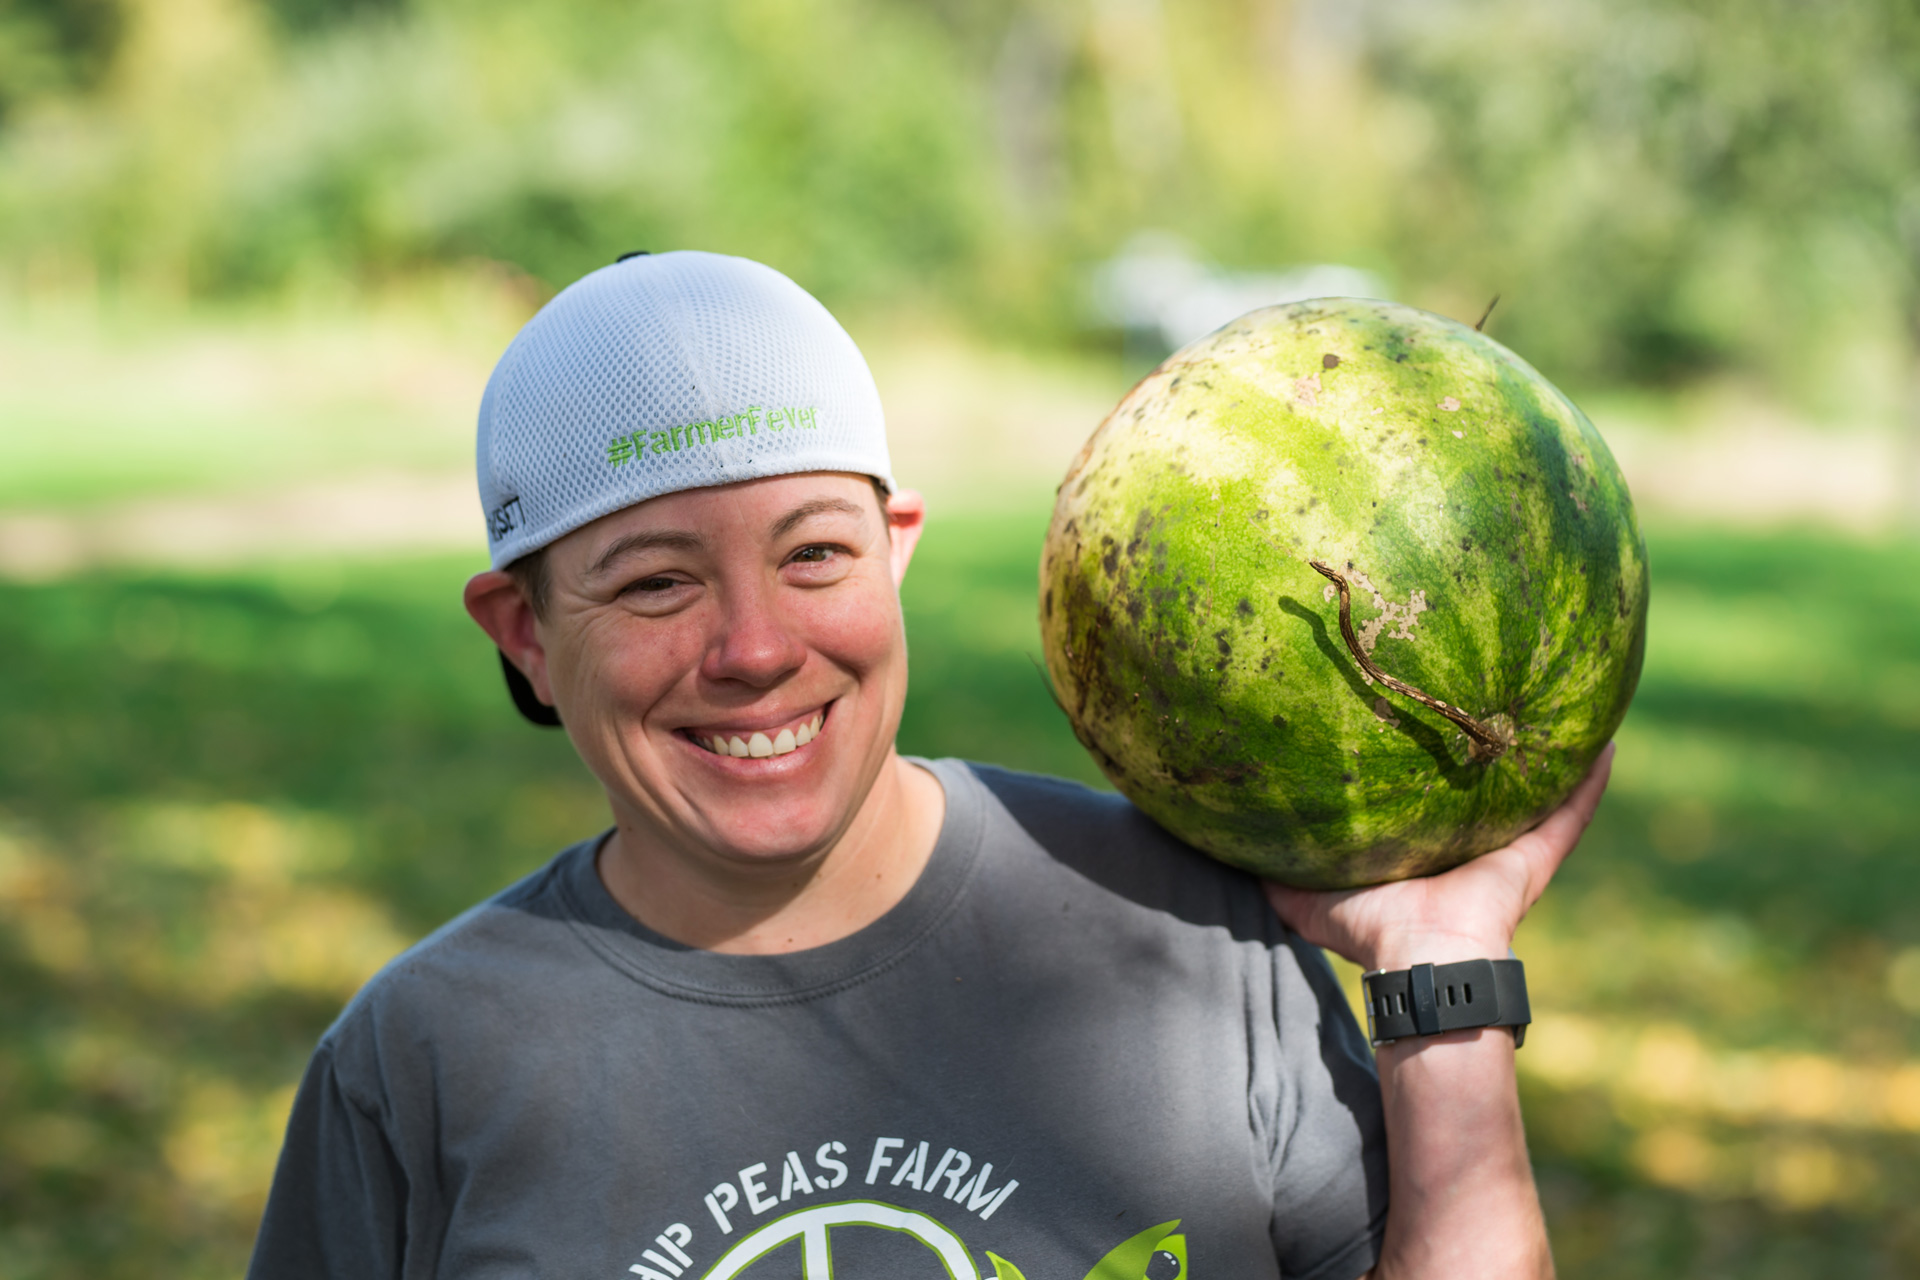 Young woman at farm hefts a large watermelon